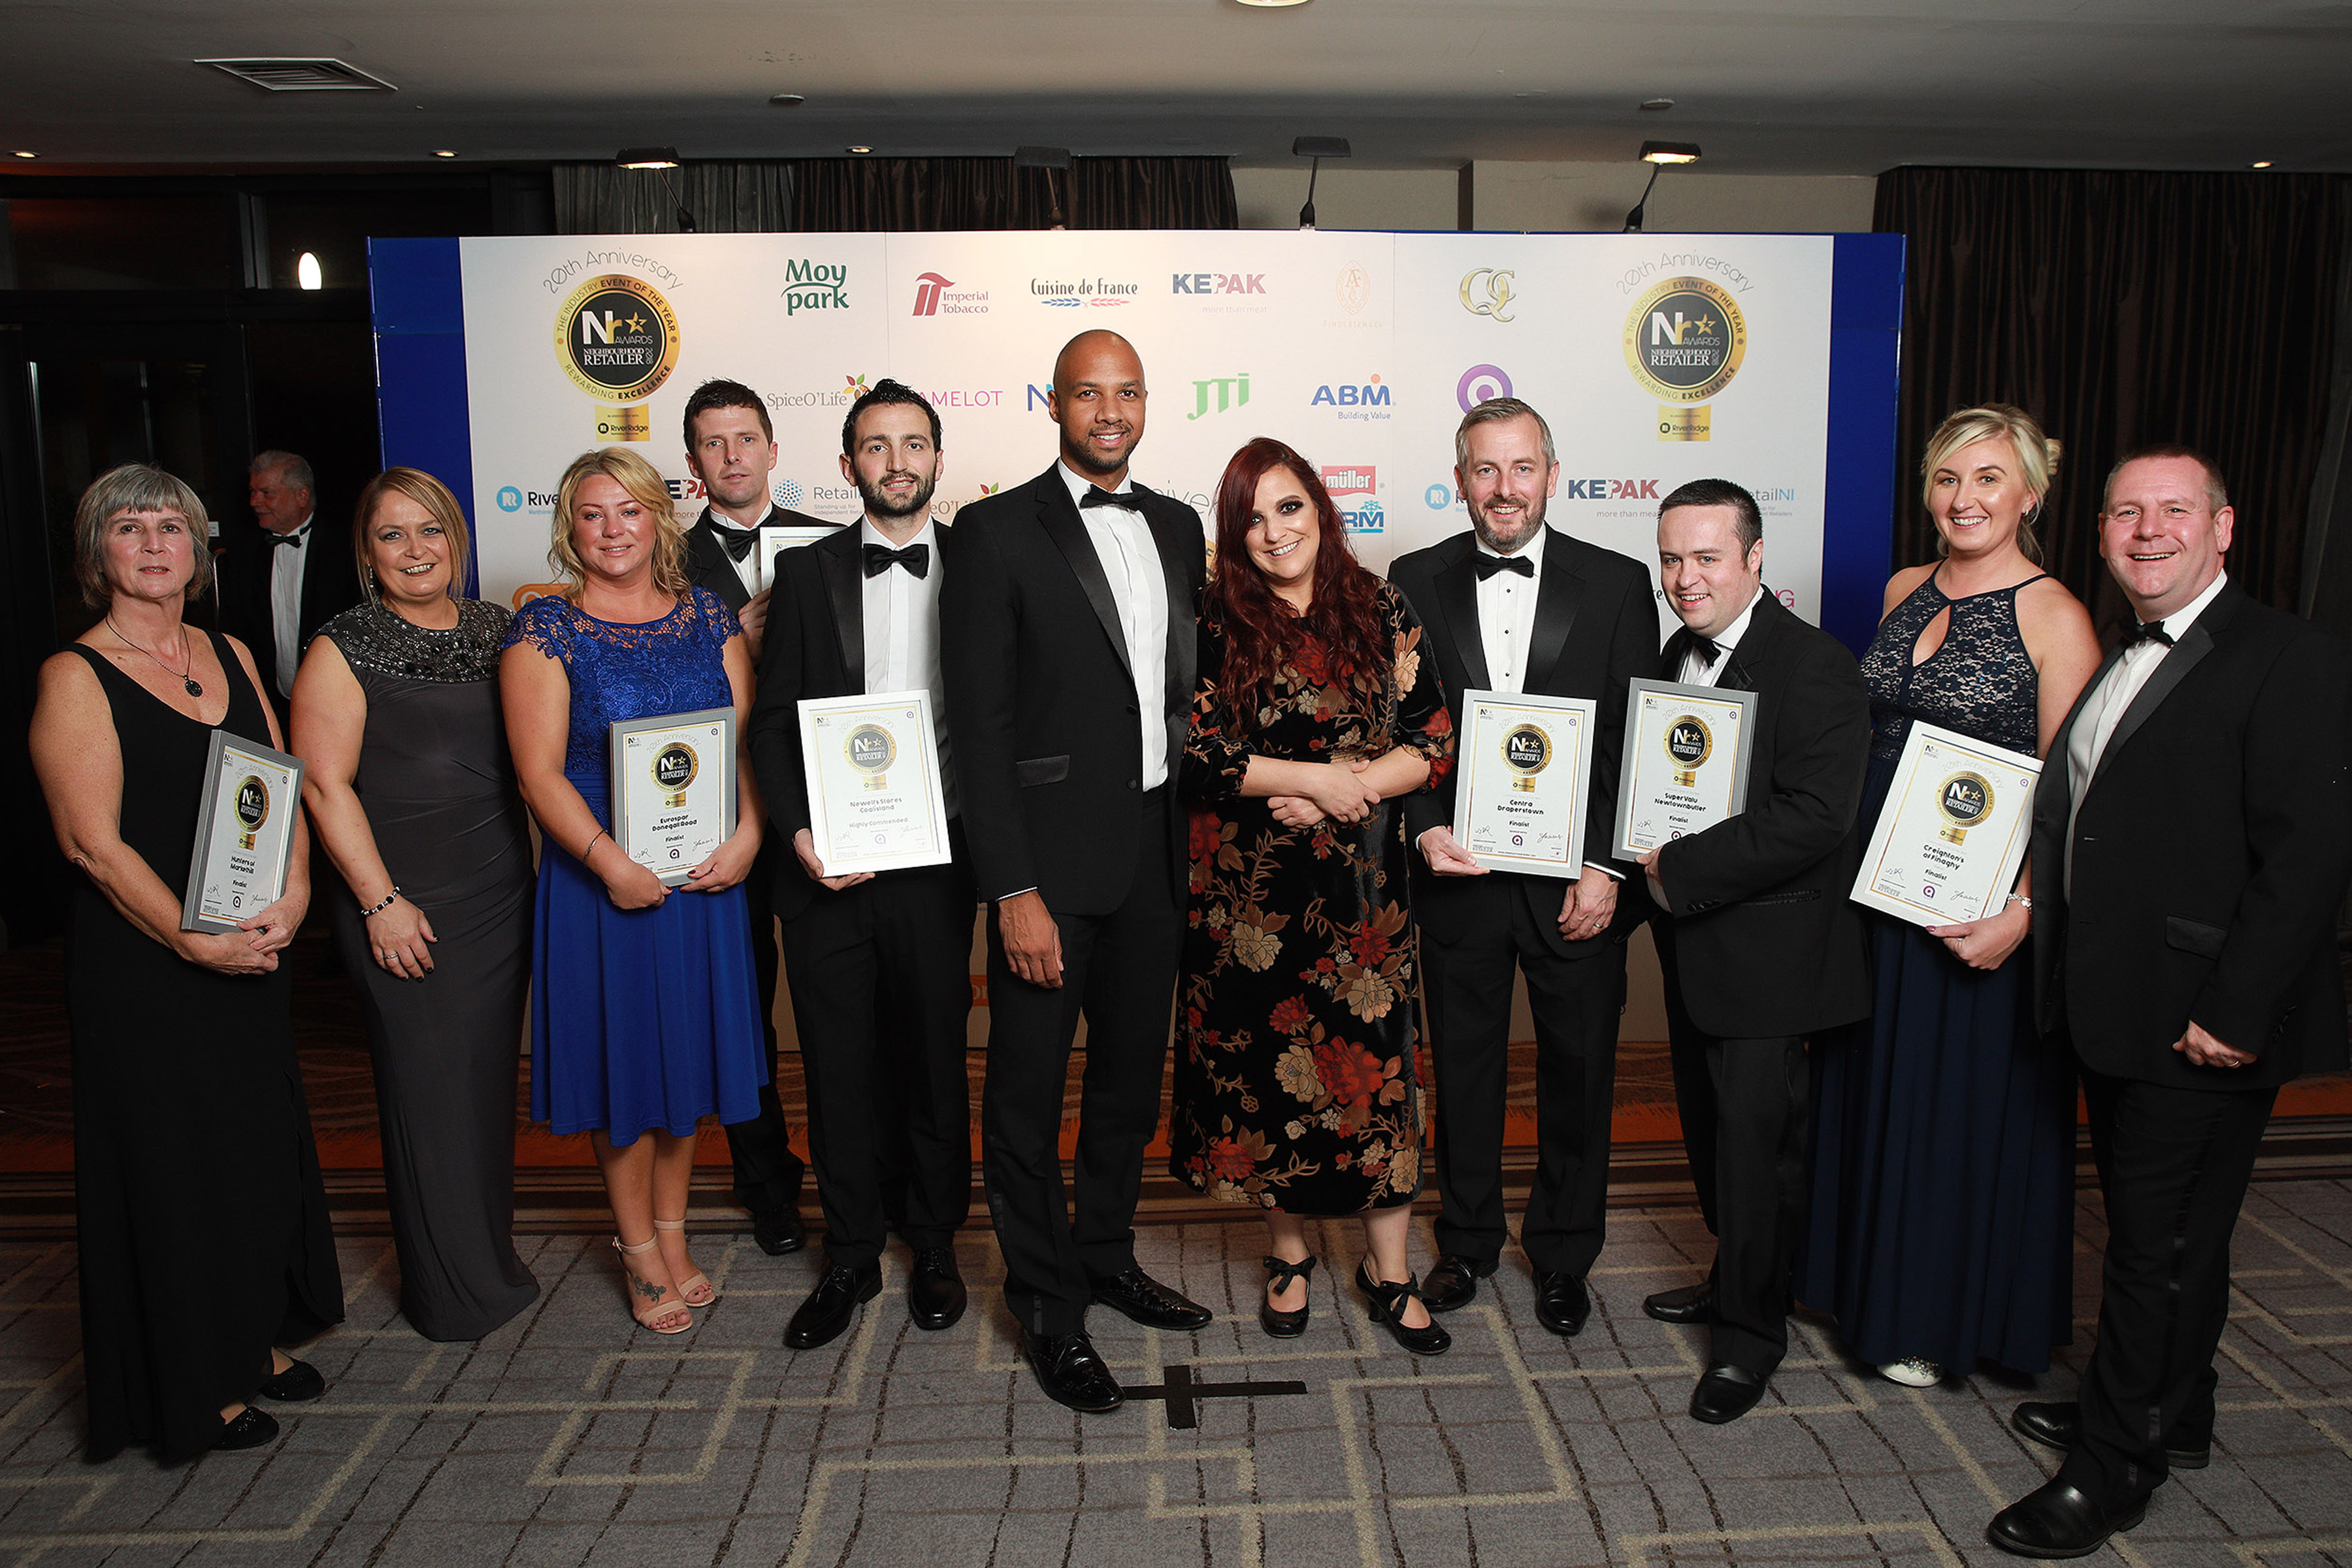 Neighbourhood Retailer Awards 2018 - Community Store of the Year finalists